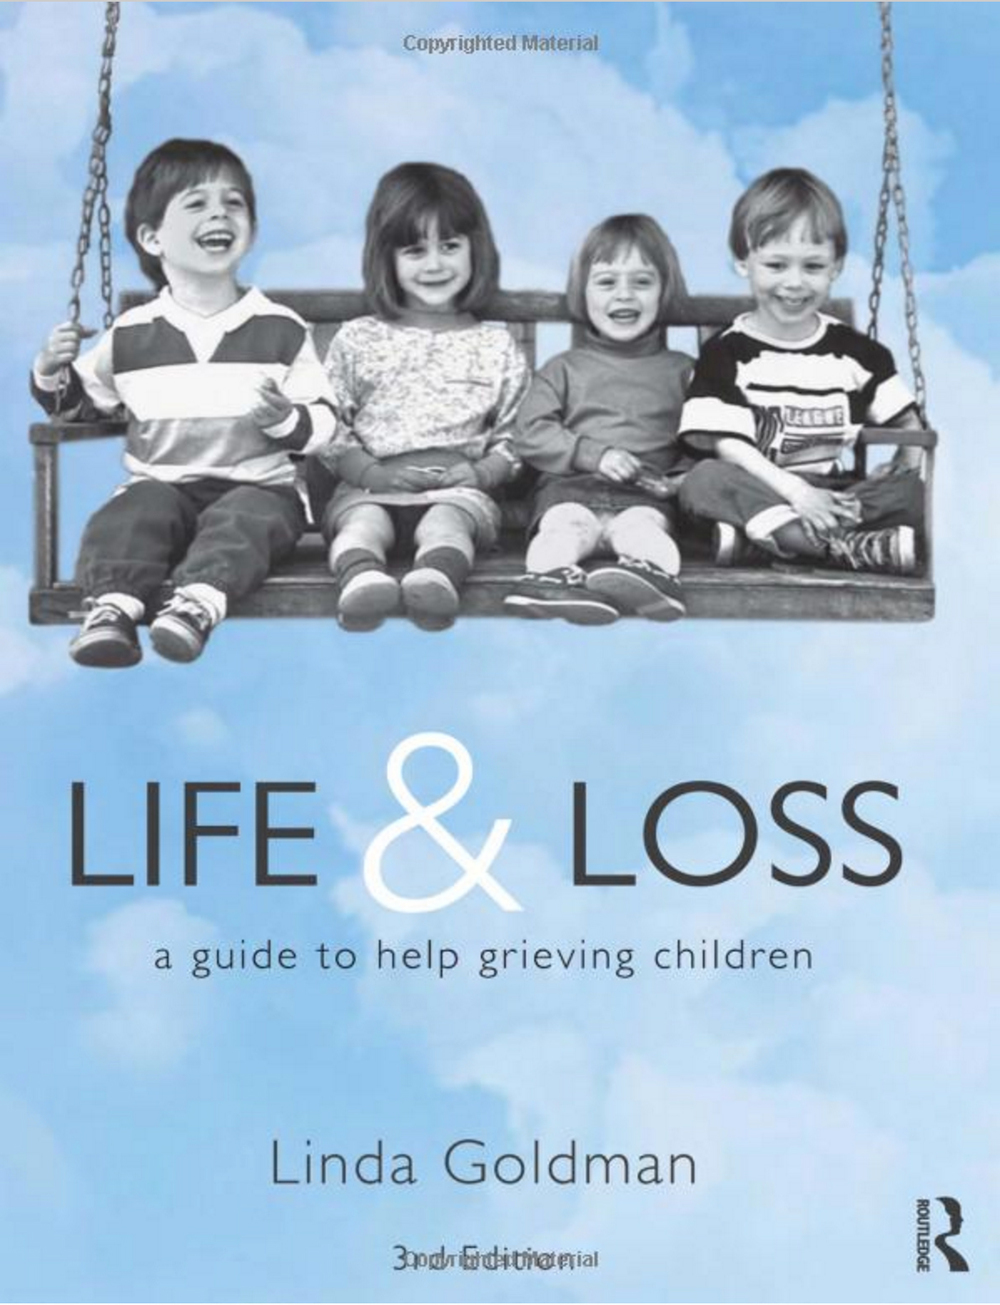 Life-and-Loss-by-Linda-Goldman-Child-Grieving-Therapist-MD-Washington-DC.jpg